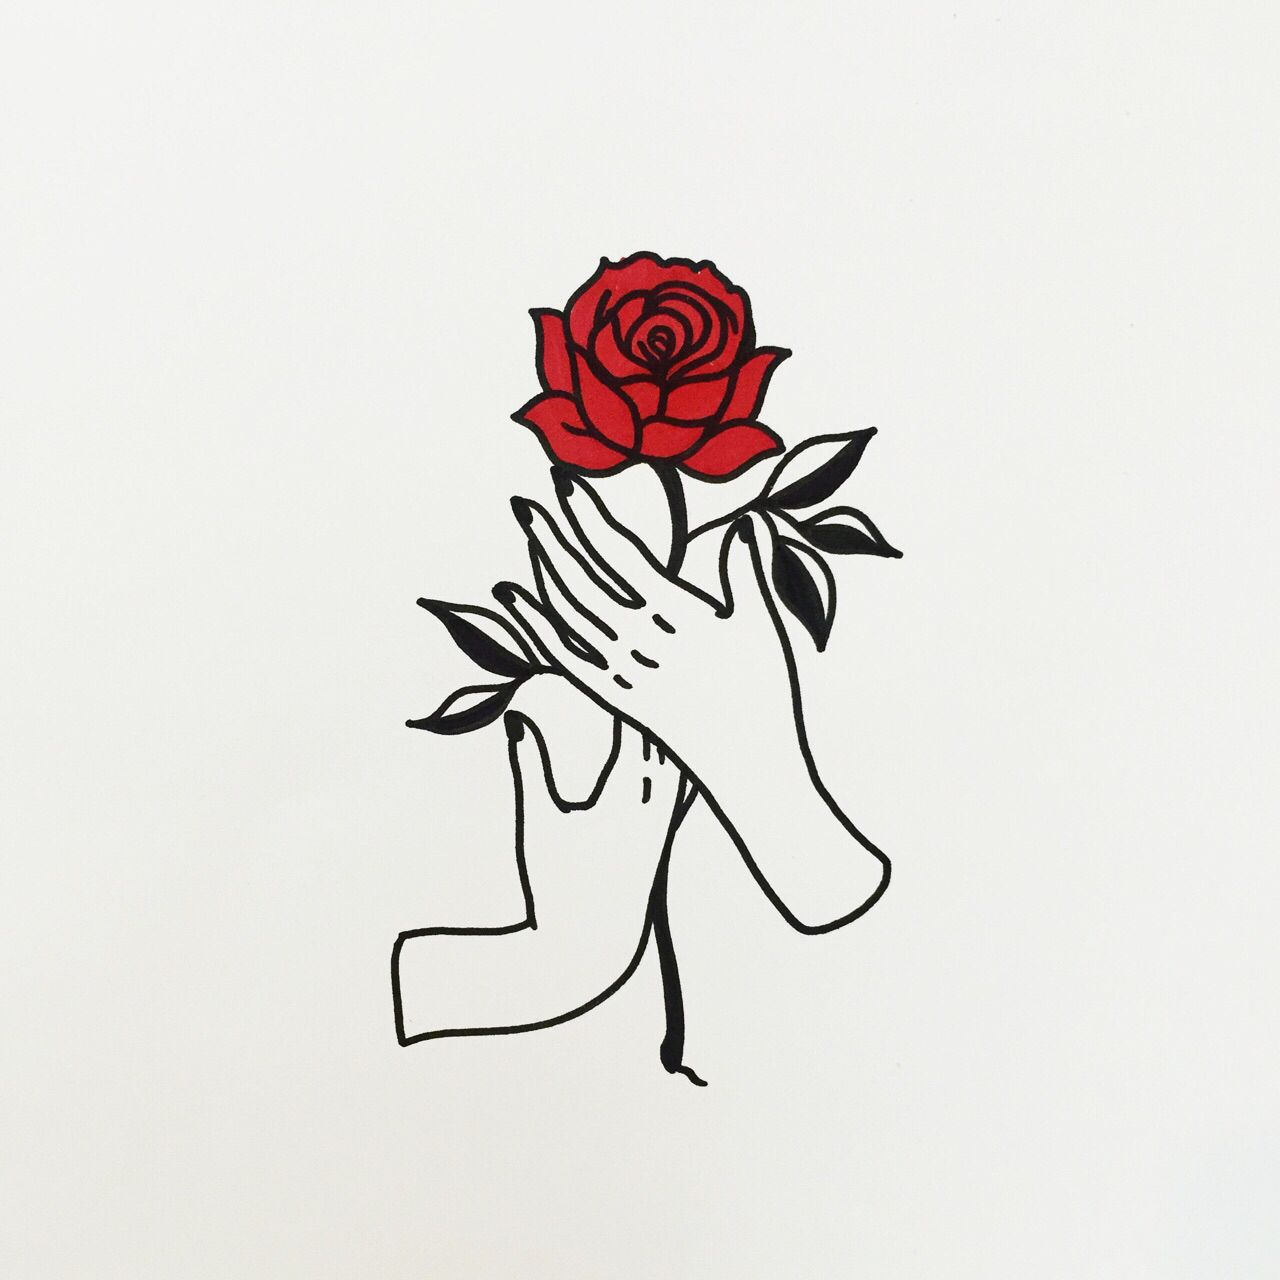 Really want this as a tattoo | ART | Tattoos, Art, Drawings